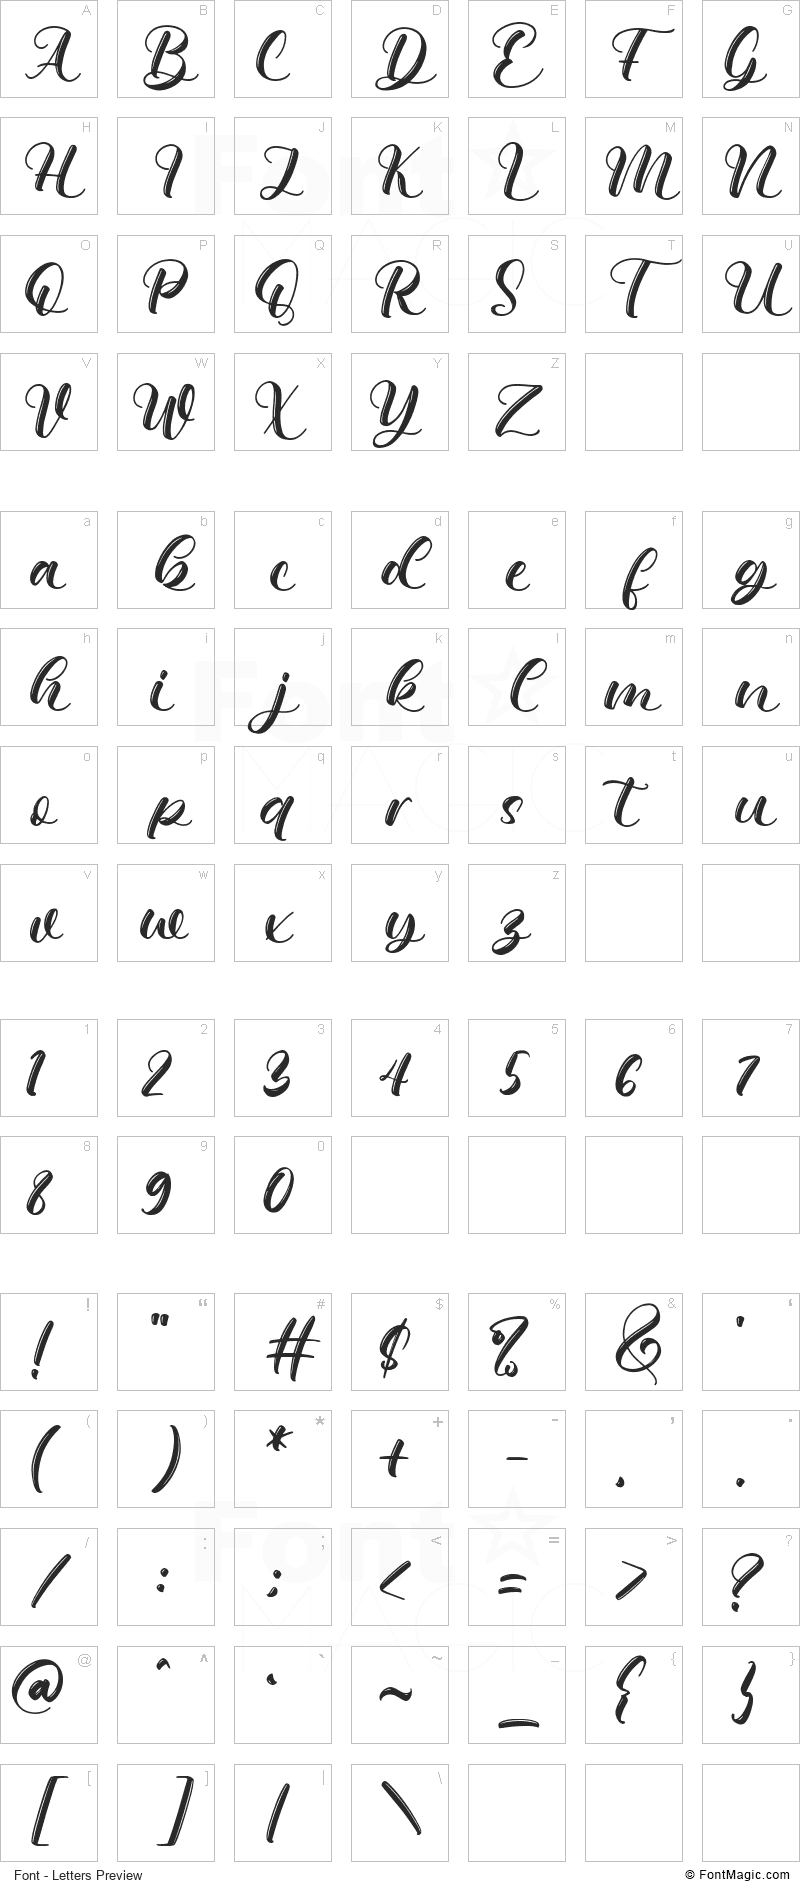 Qimberly Font - All Latters Preview Chart